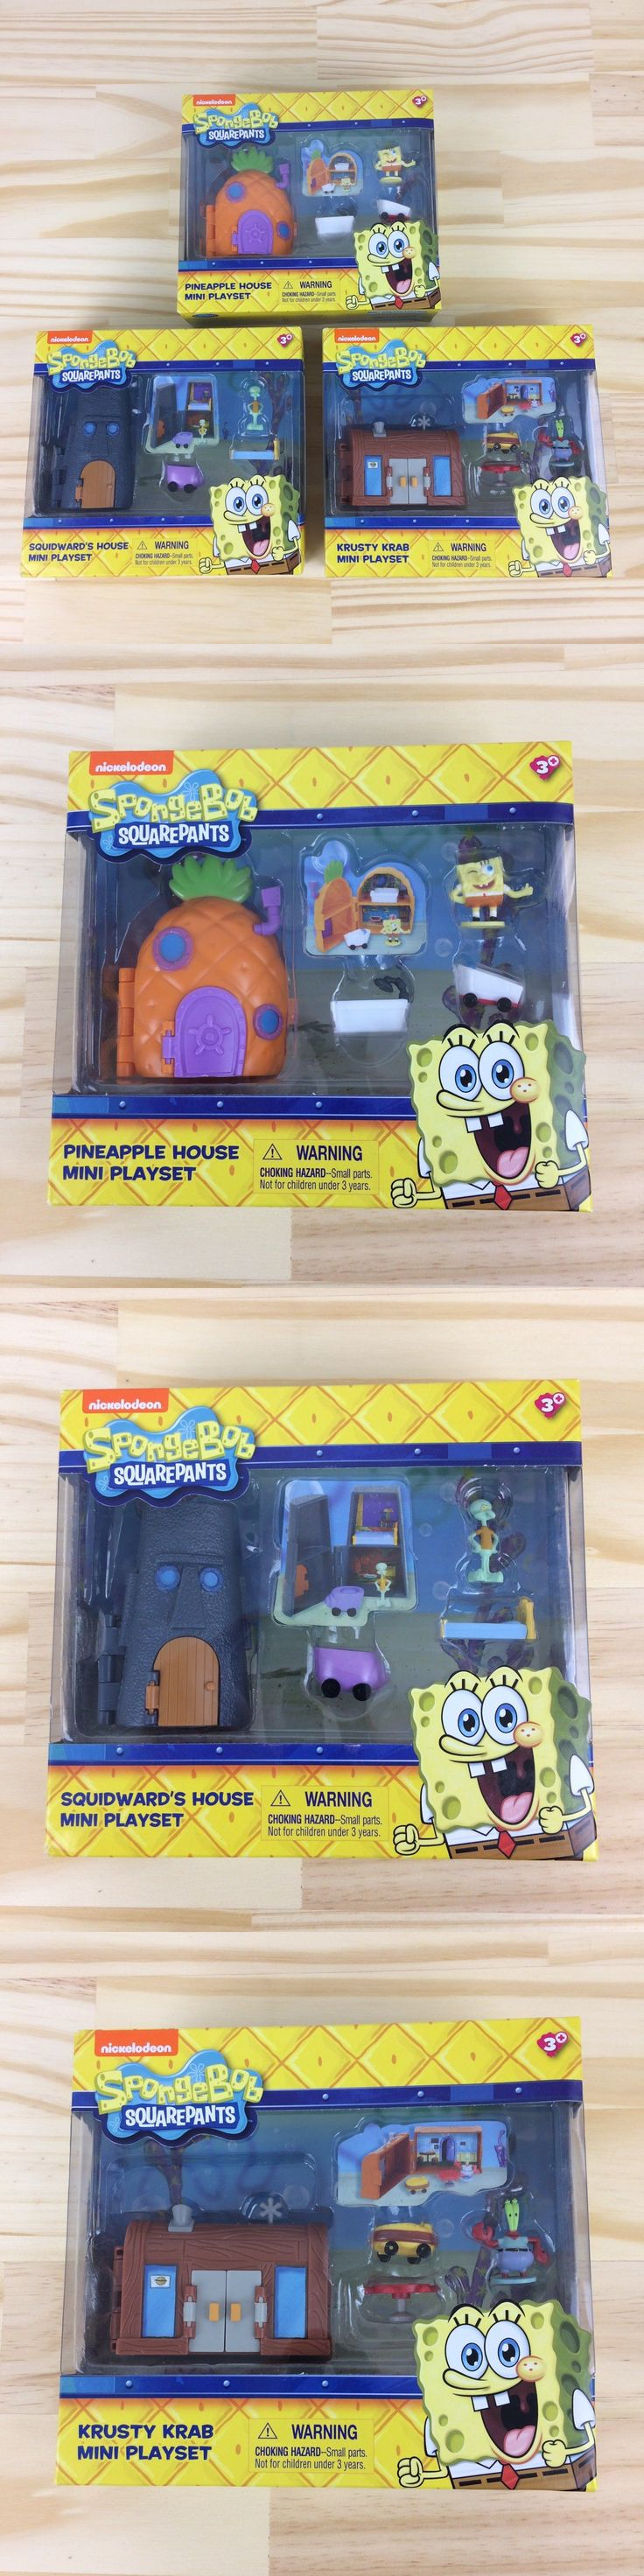 SpongeBob Squarepants 20919: New Lot Of 3 Spongebob S House Squidward S House The Krusty Krab Mini Playsets -> BUY IT NOW ONLY: $39.99 on eBay!